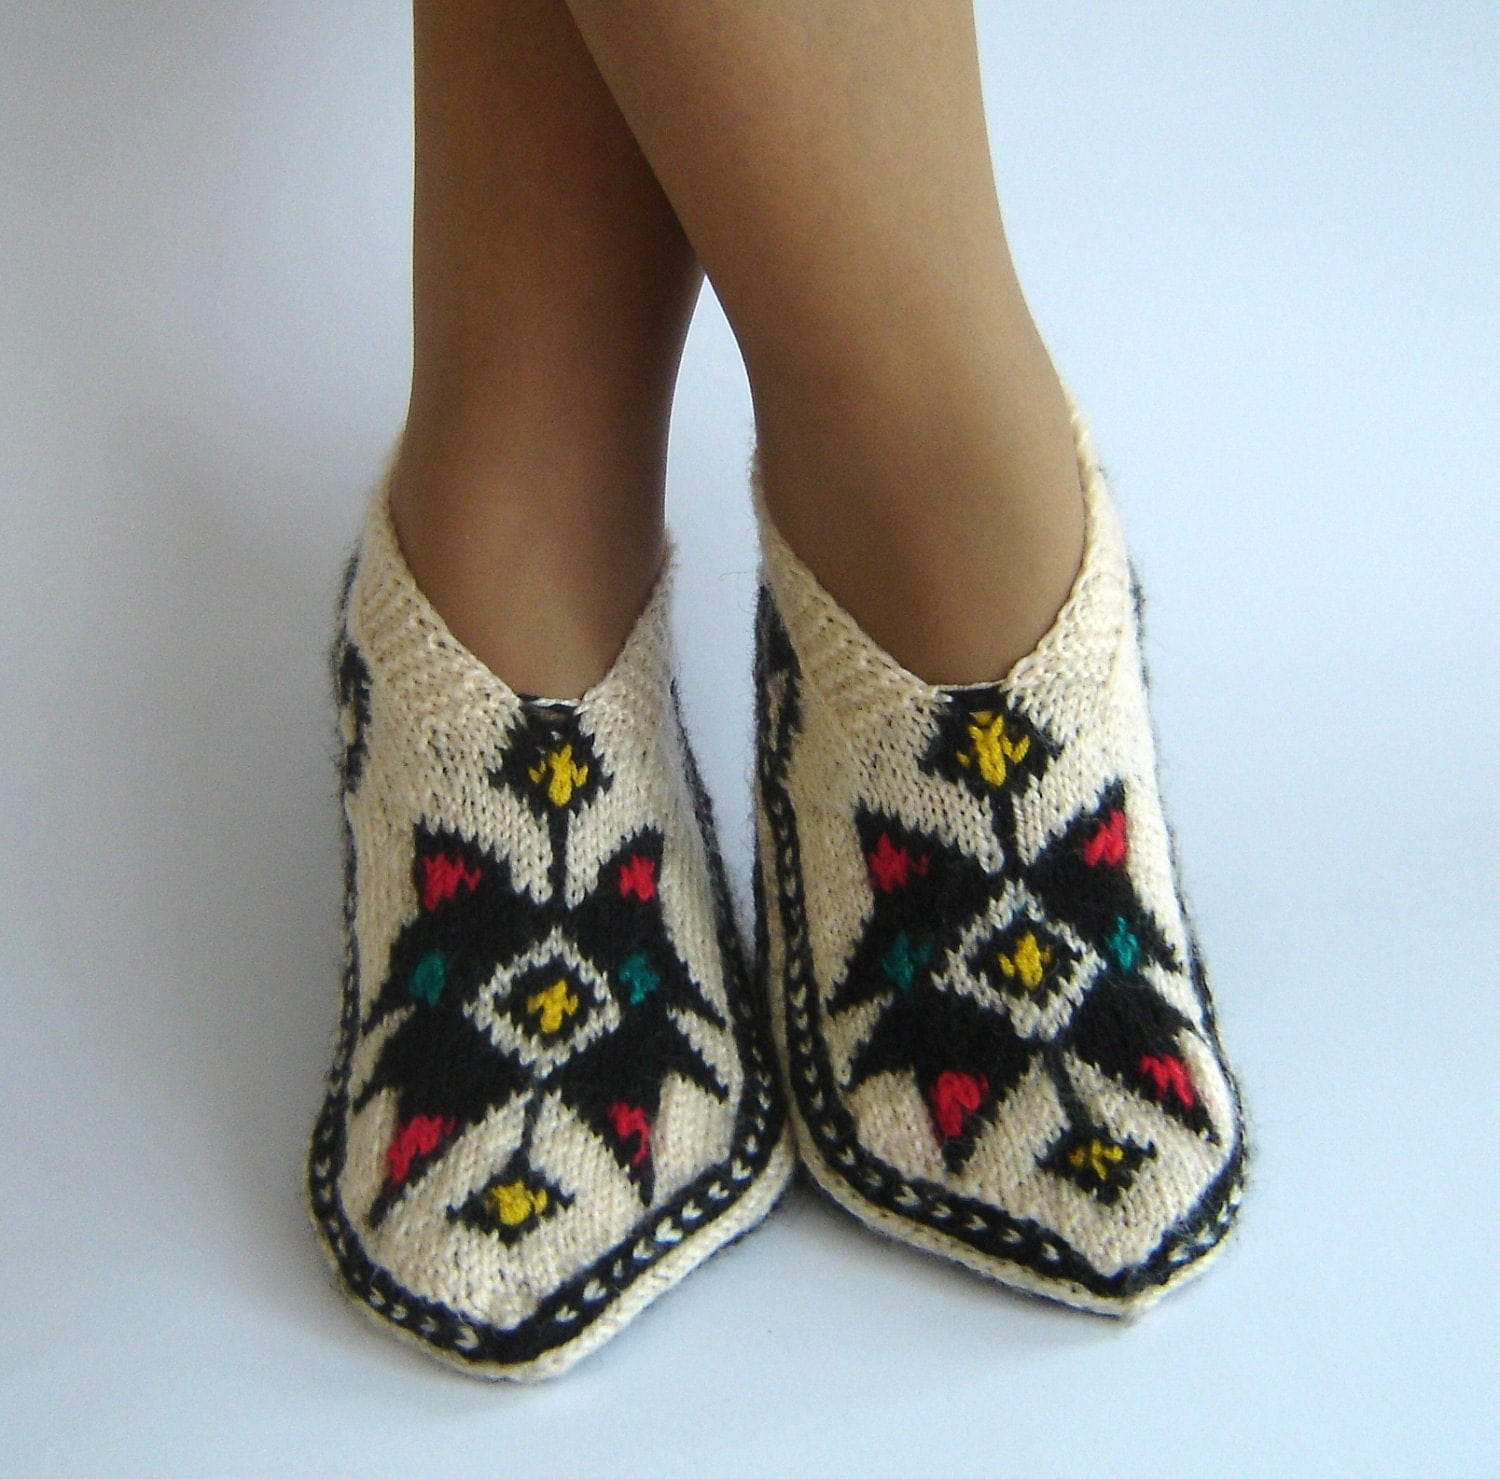 Knitting Pattern For Turkish Slippers : Traditional Turkish Handknitted Slippers 100% Wool